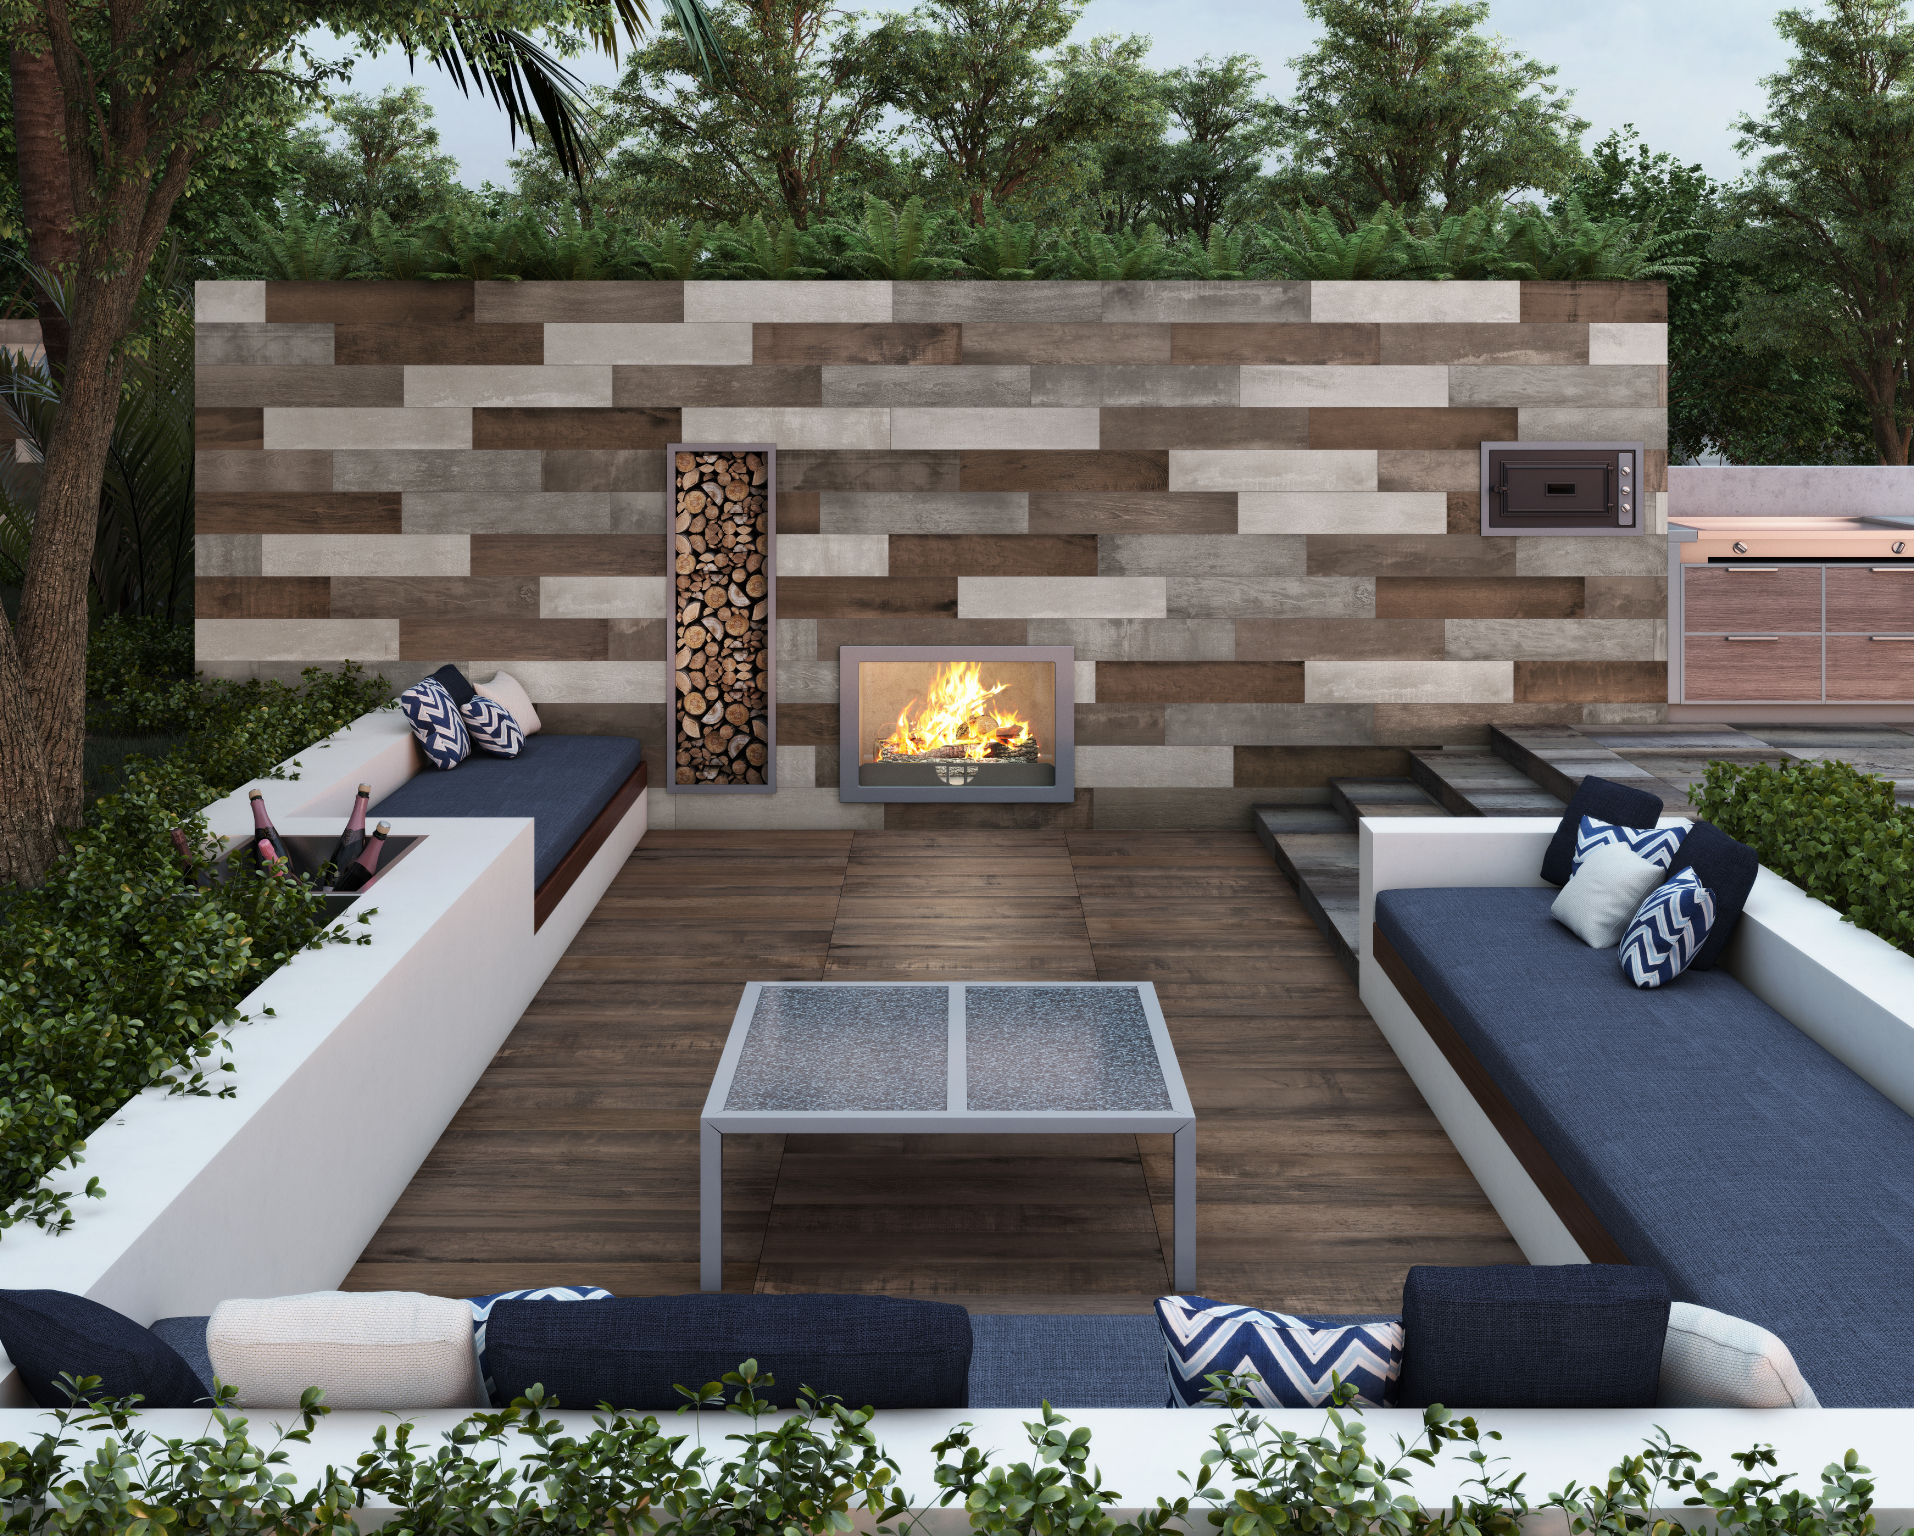 Wood-look tile in an outdoor kitchen